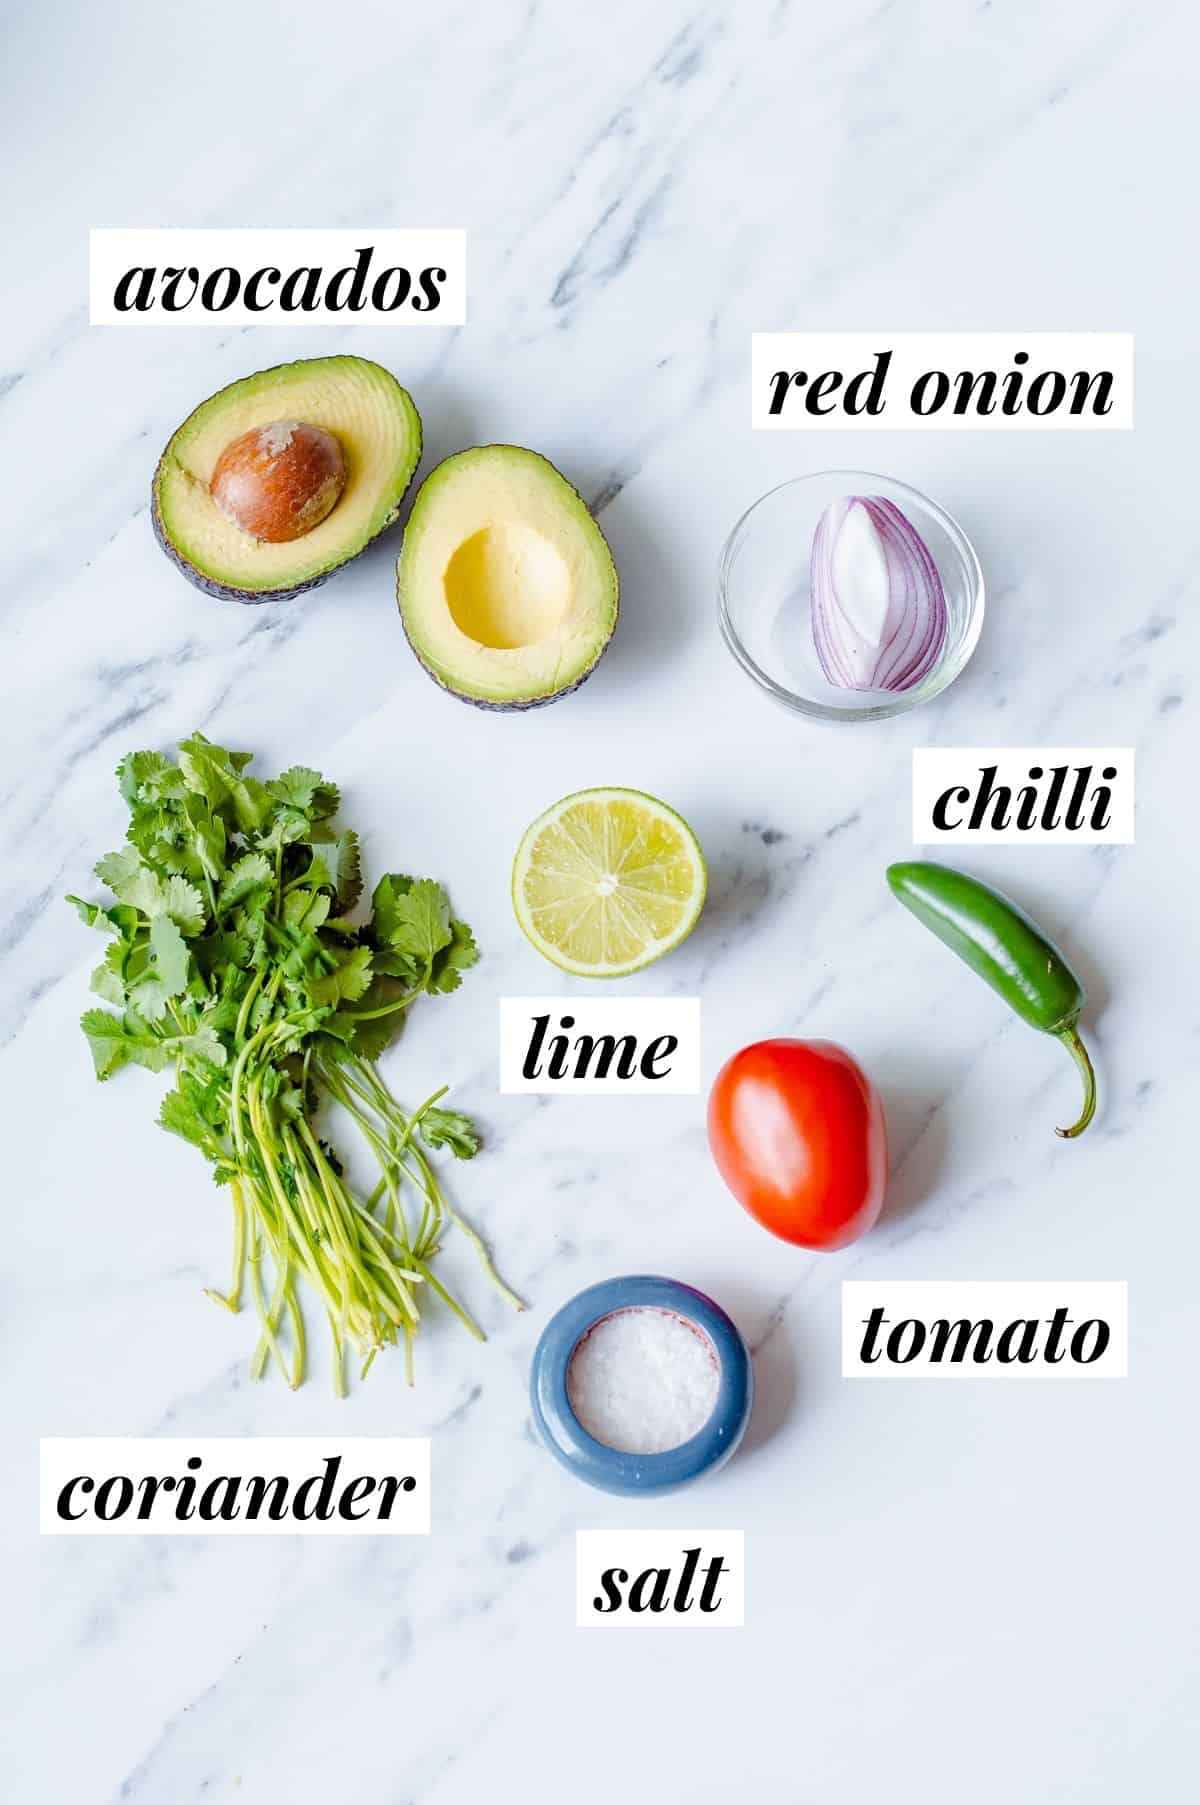 Ingredients to make Guacamole.